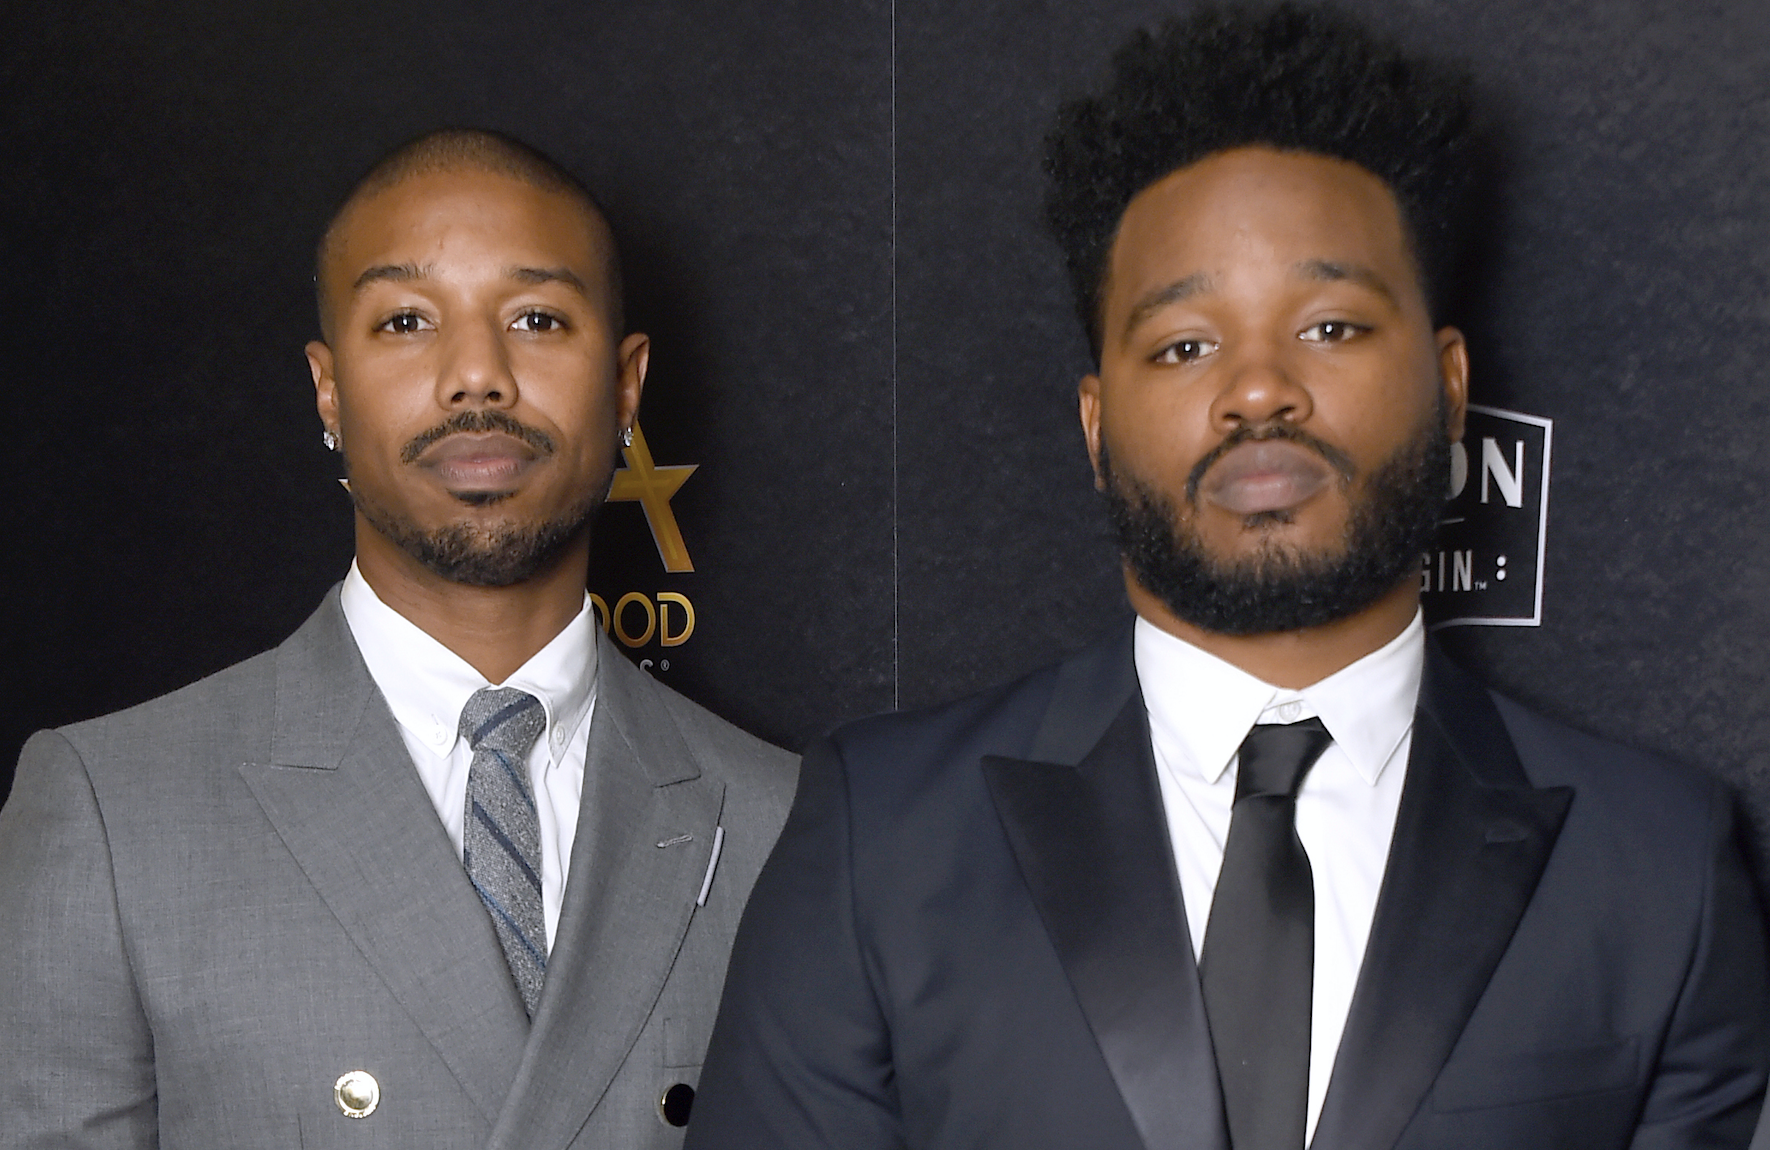 Eddie Murphy Rejected Ryan Coogler's Idea for 'Coming to America' Sequel with Michael B. Jordan - IndieWire